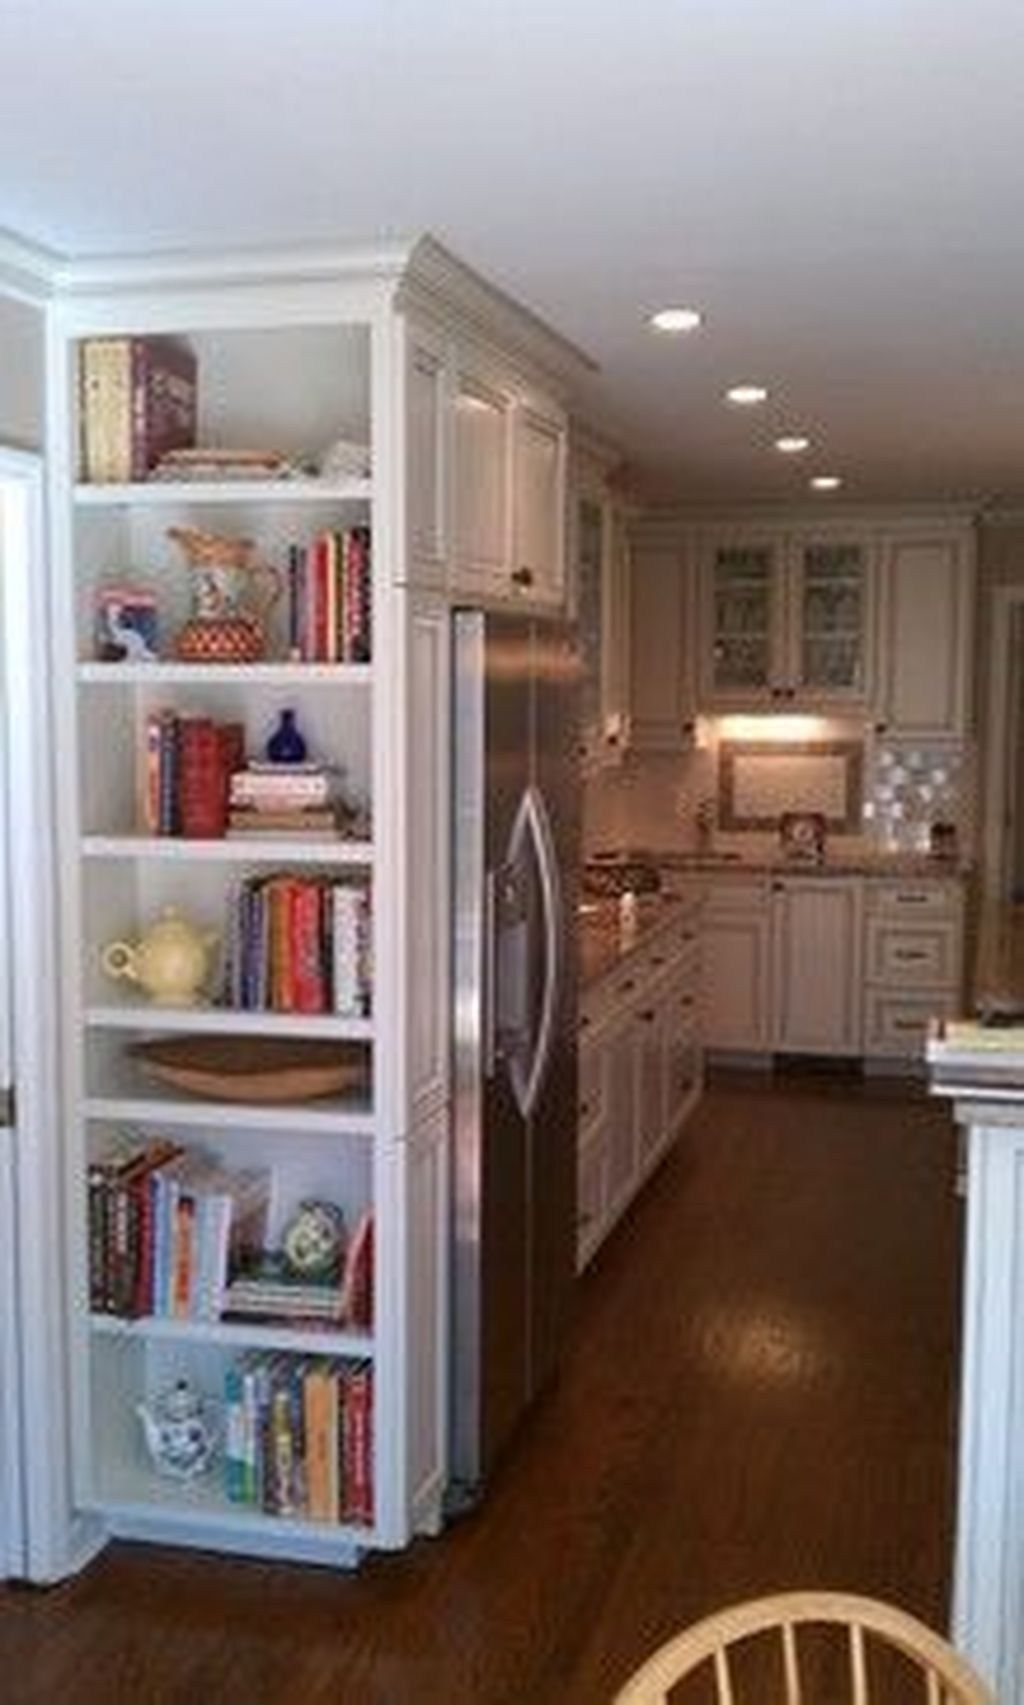 Awesome Open Shelving Bookshelves Ideas To Decorating Your Room 41 Kitchen Bookshelf Kitchen Cabinet Storage Kitchen Cabinets